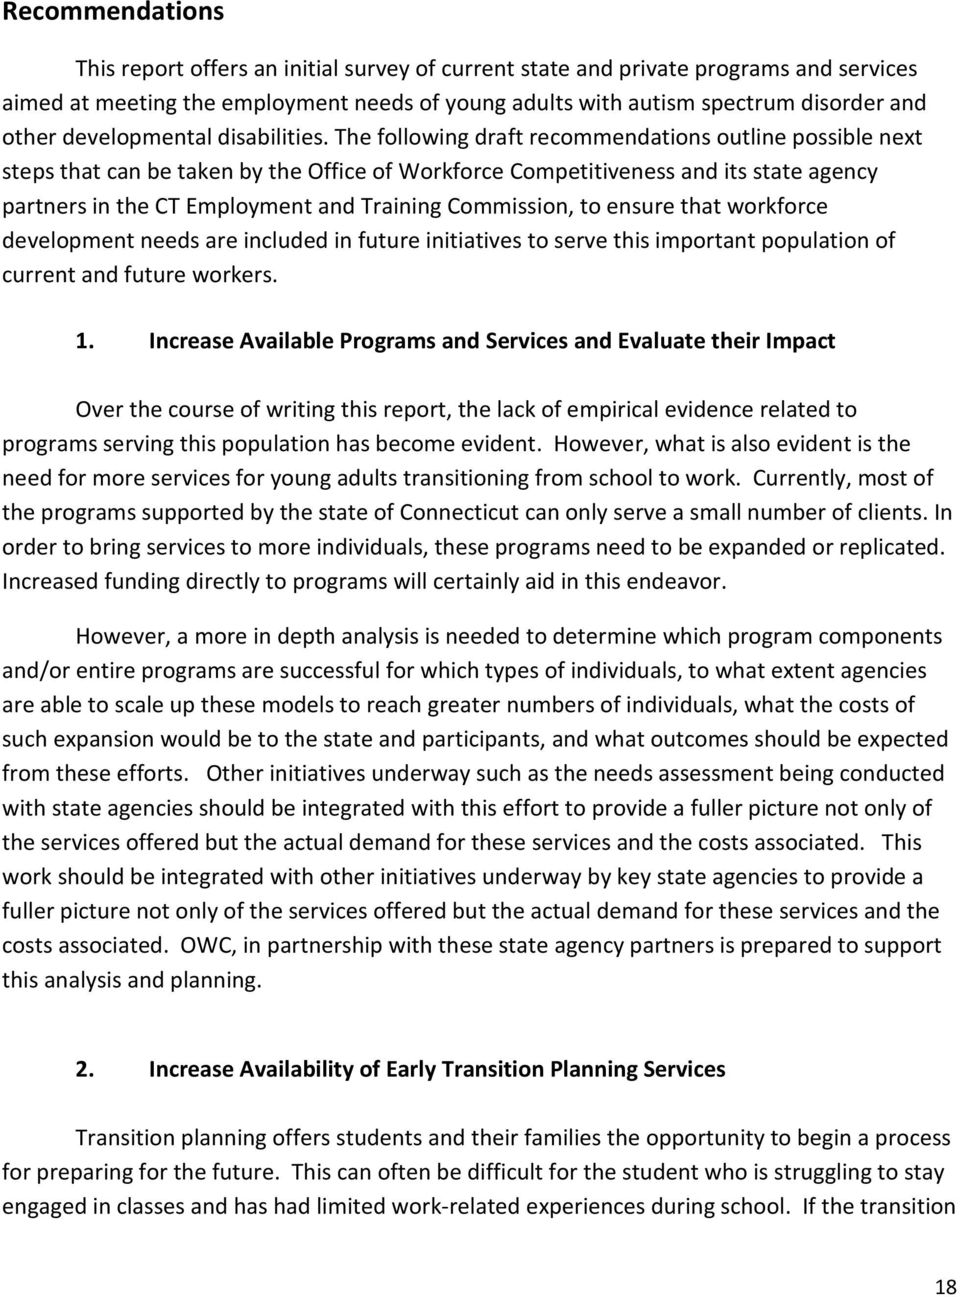 The following draft recommendations outline possible next steps that can be taken by the Office of Workforce Competitiveness and its state agency partners in the CT Employment and Training